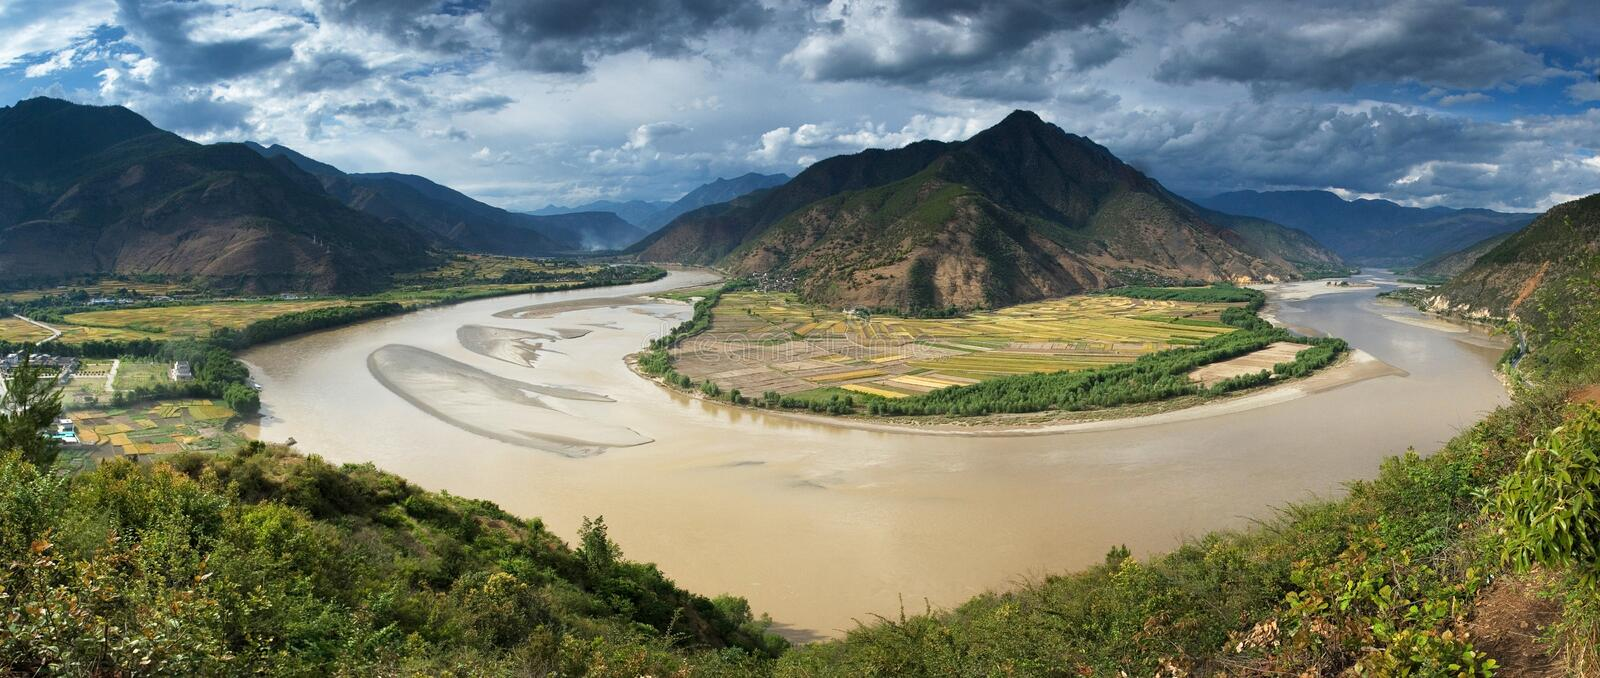 Yangtze River, First Turn, Panorama royalty free stock photo